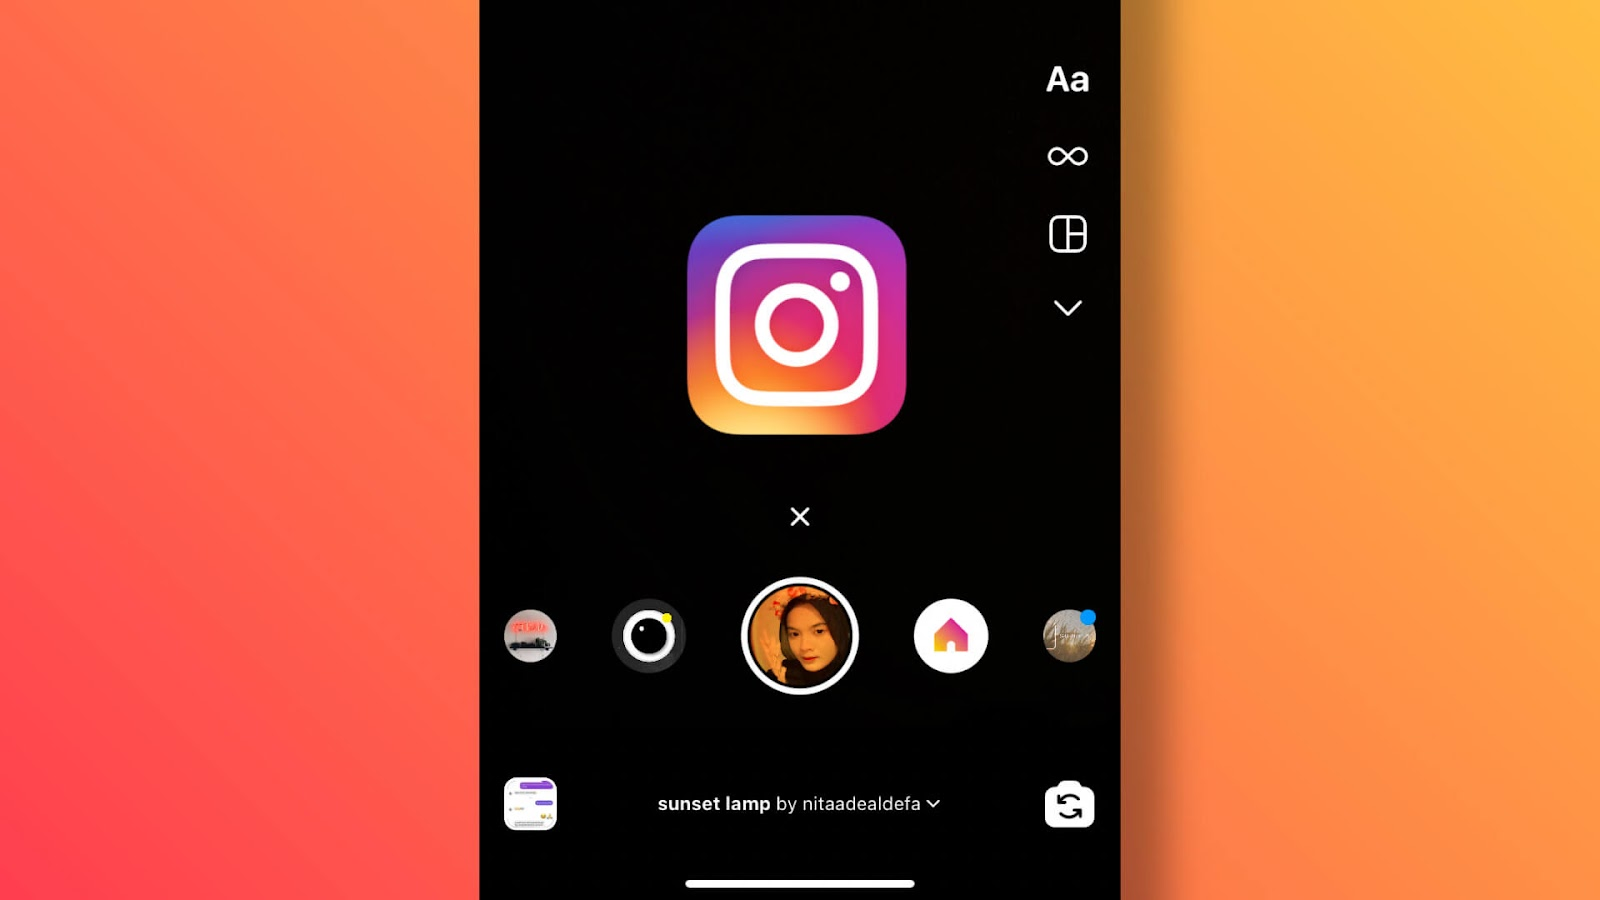 Add Instagram filters on existing photos and videos